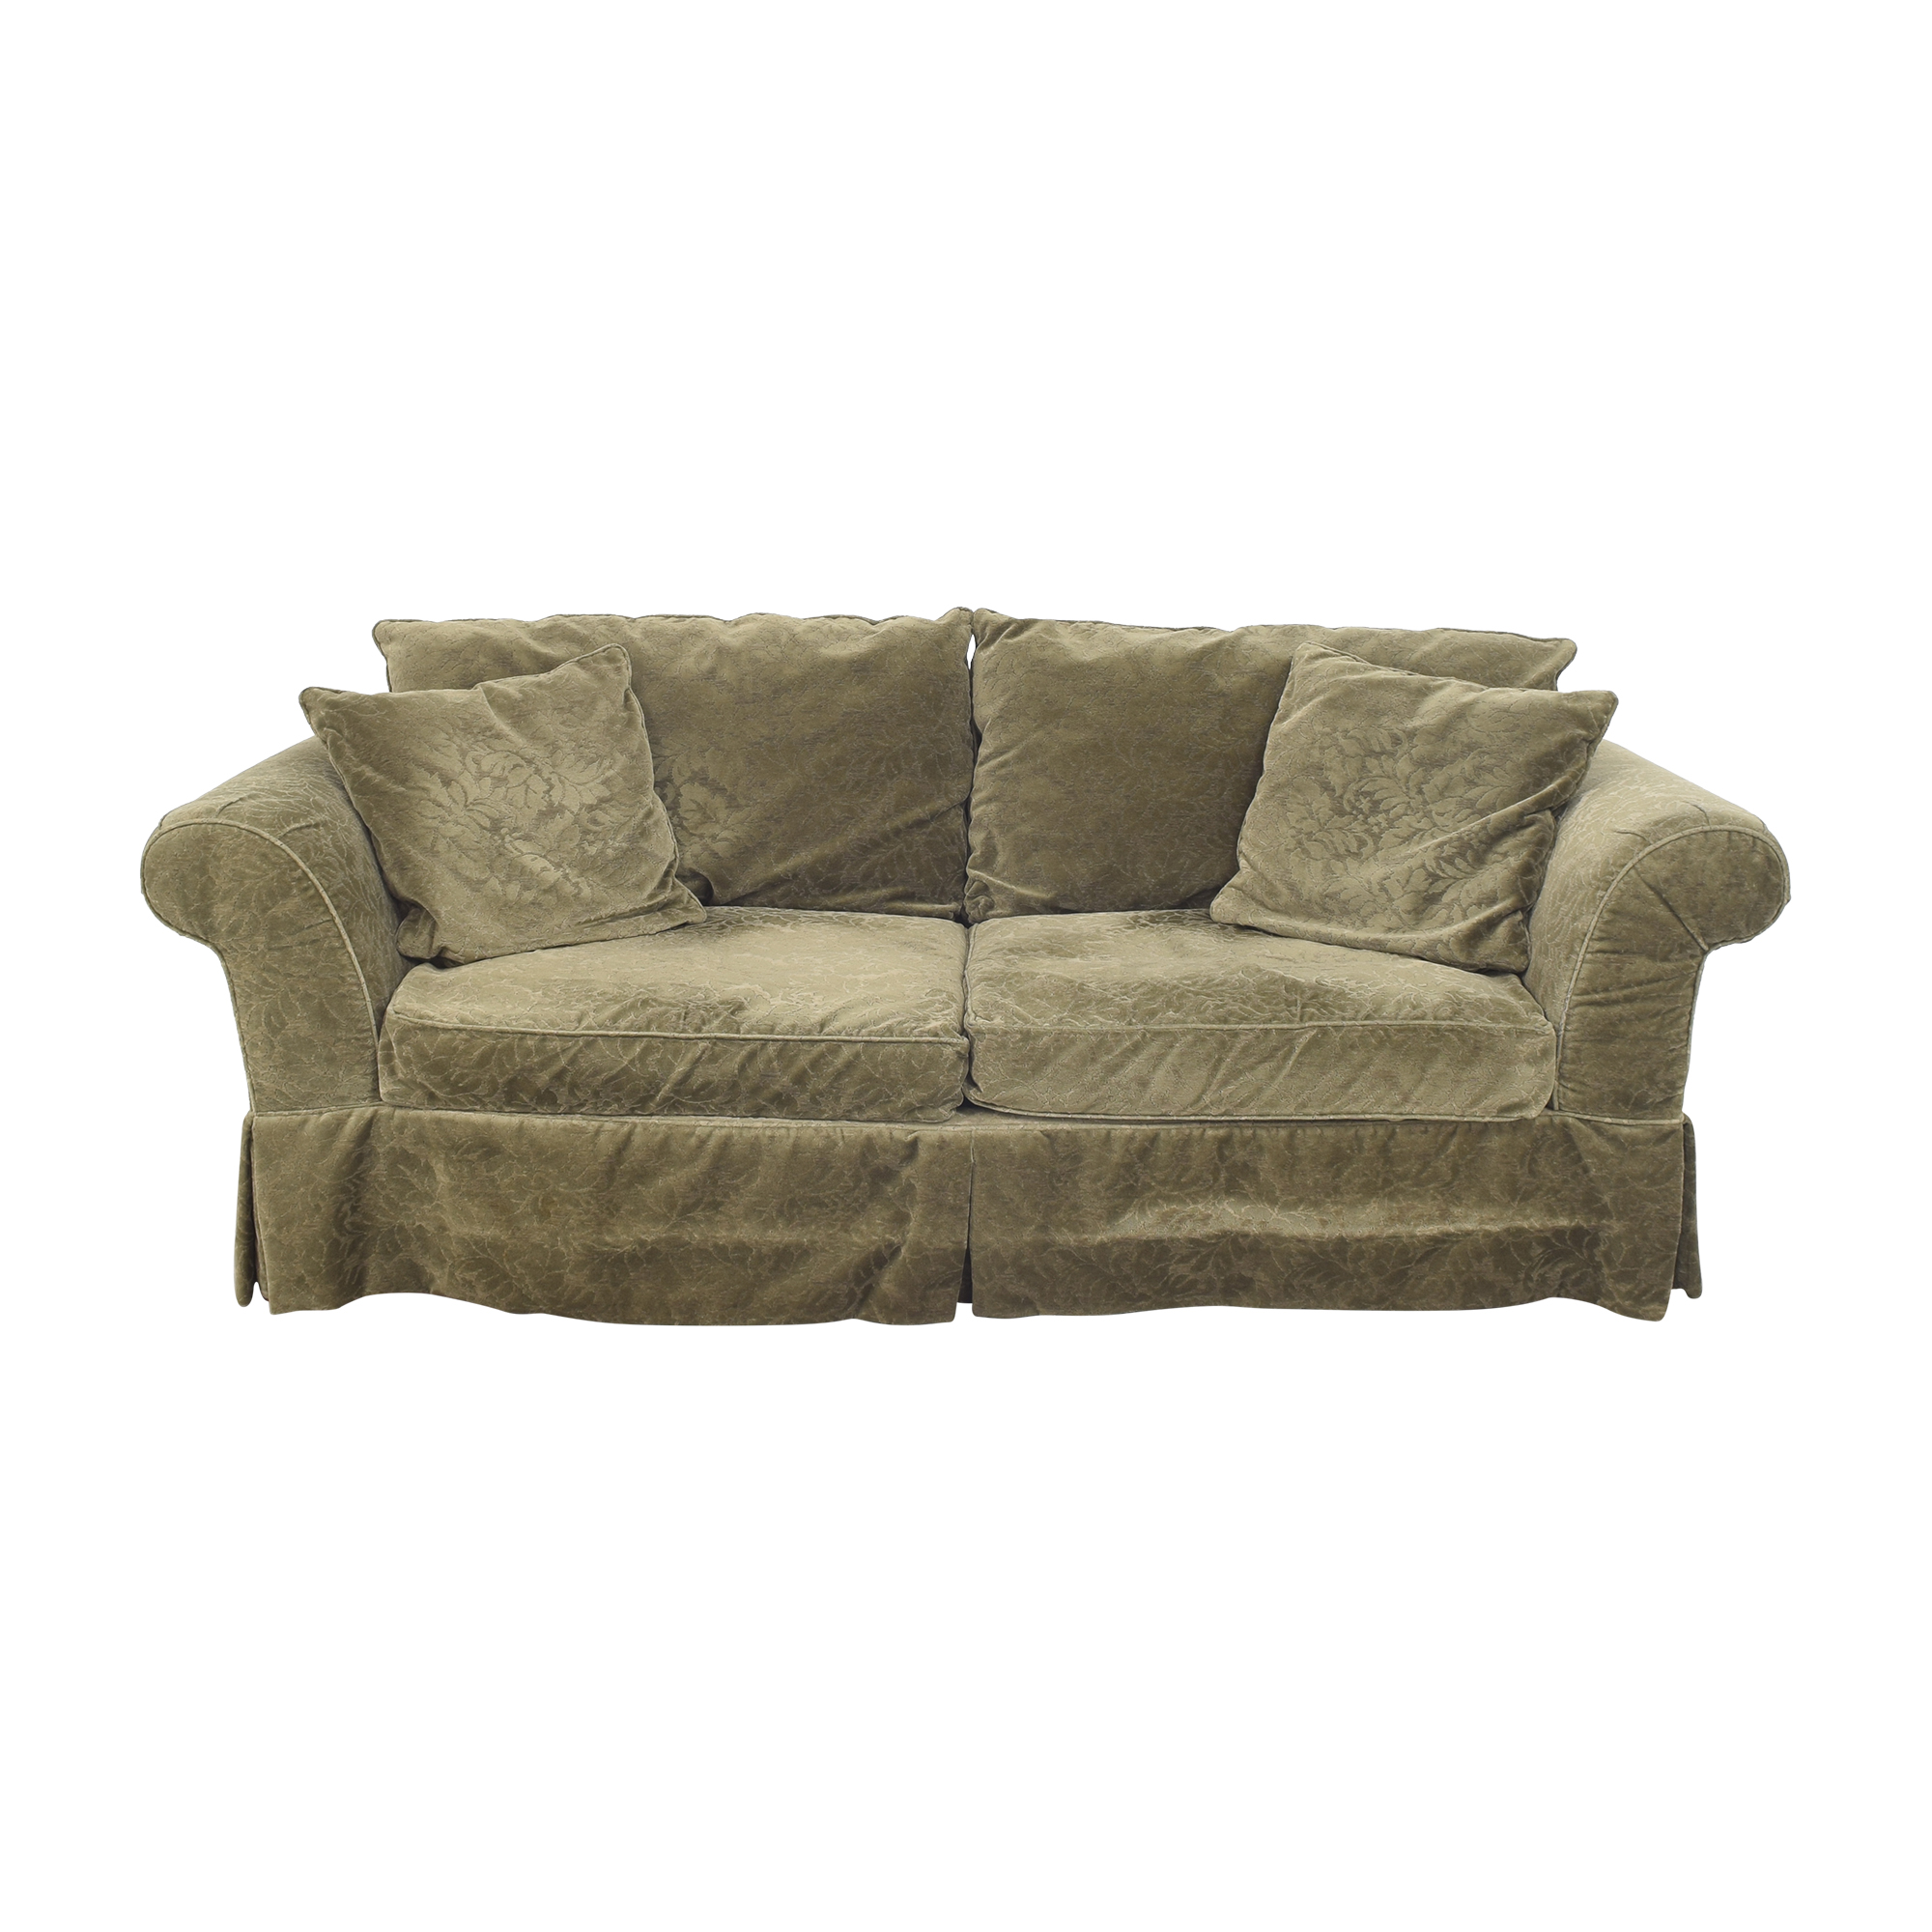 shop Door Store Door Store Two Cushion Sofa online